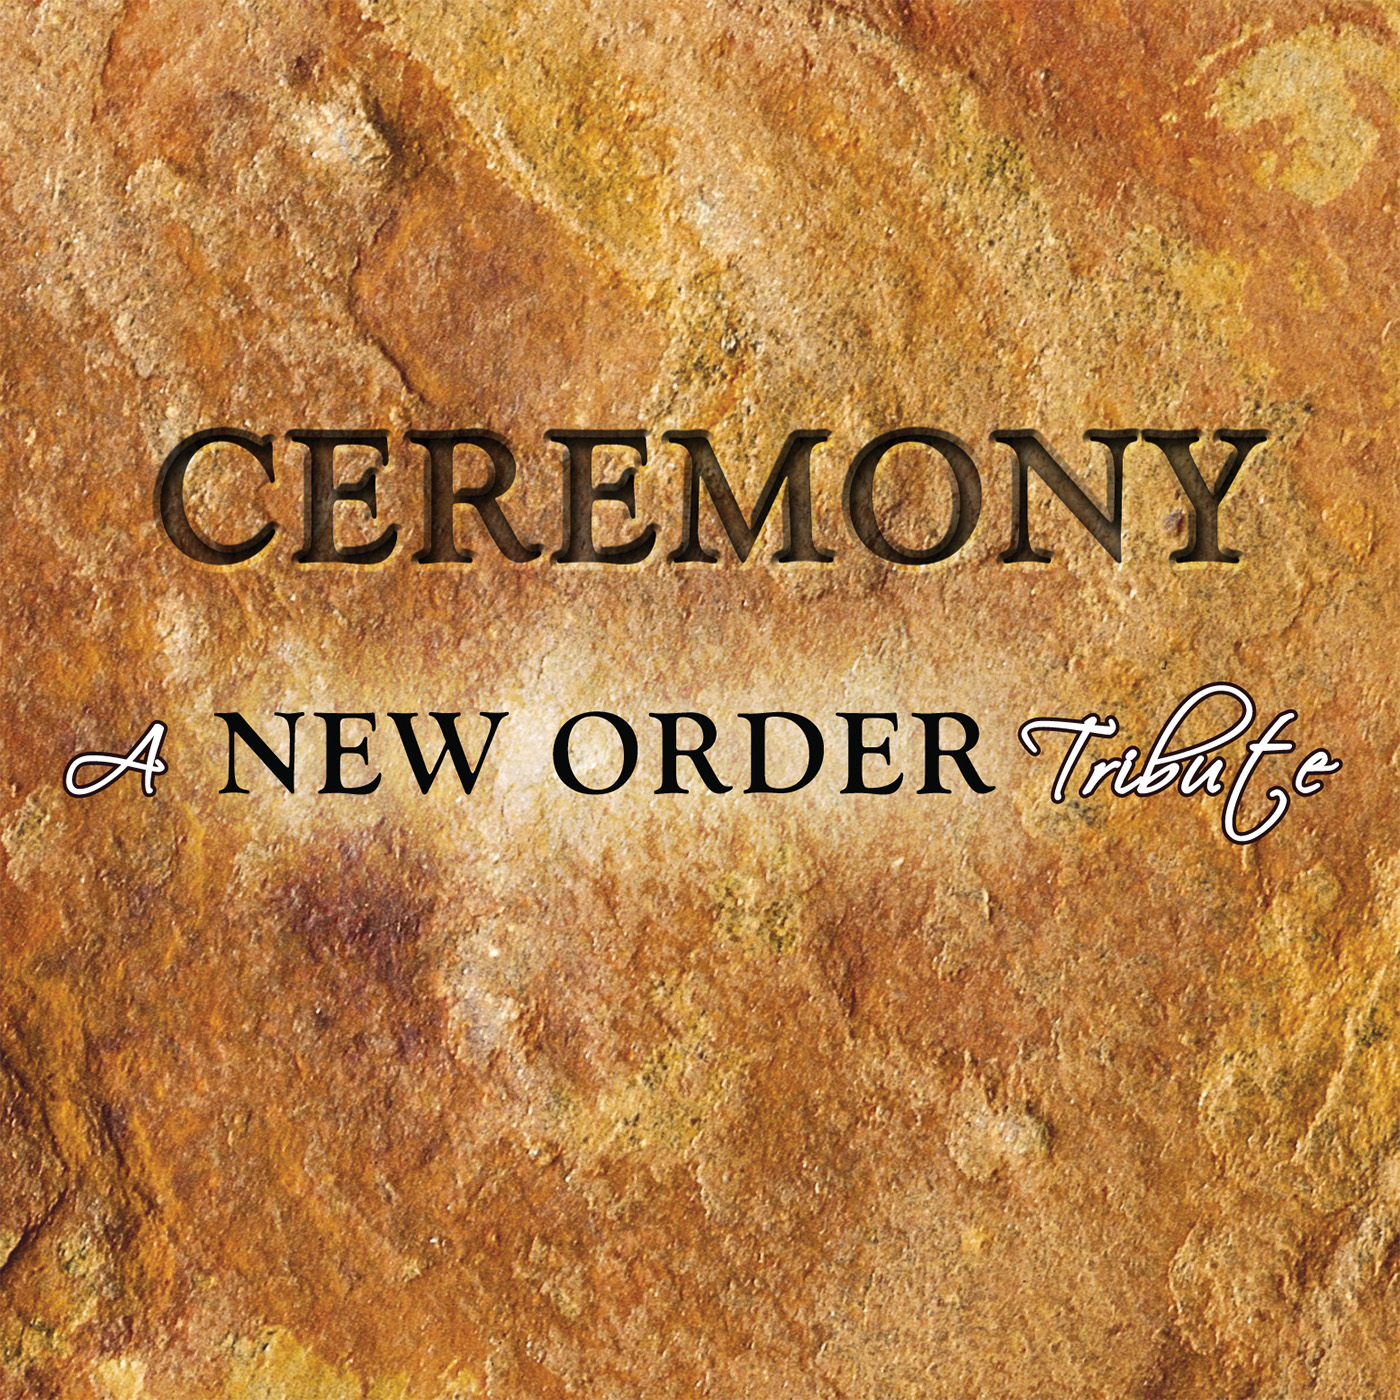 Contest: Win a copy of 'Ceremony: A New Order Tribute' 2CD benefit compilation